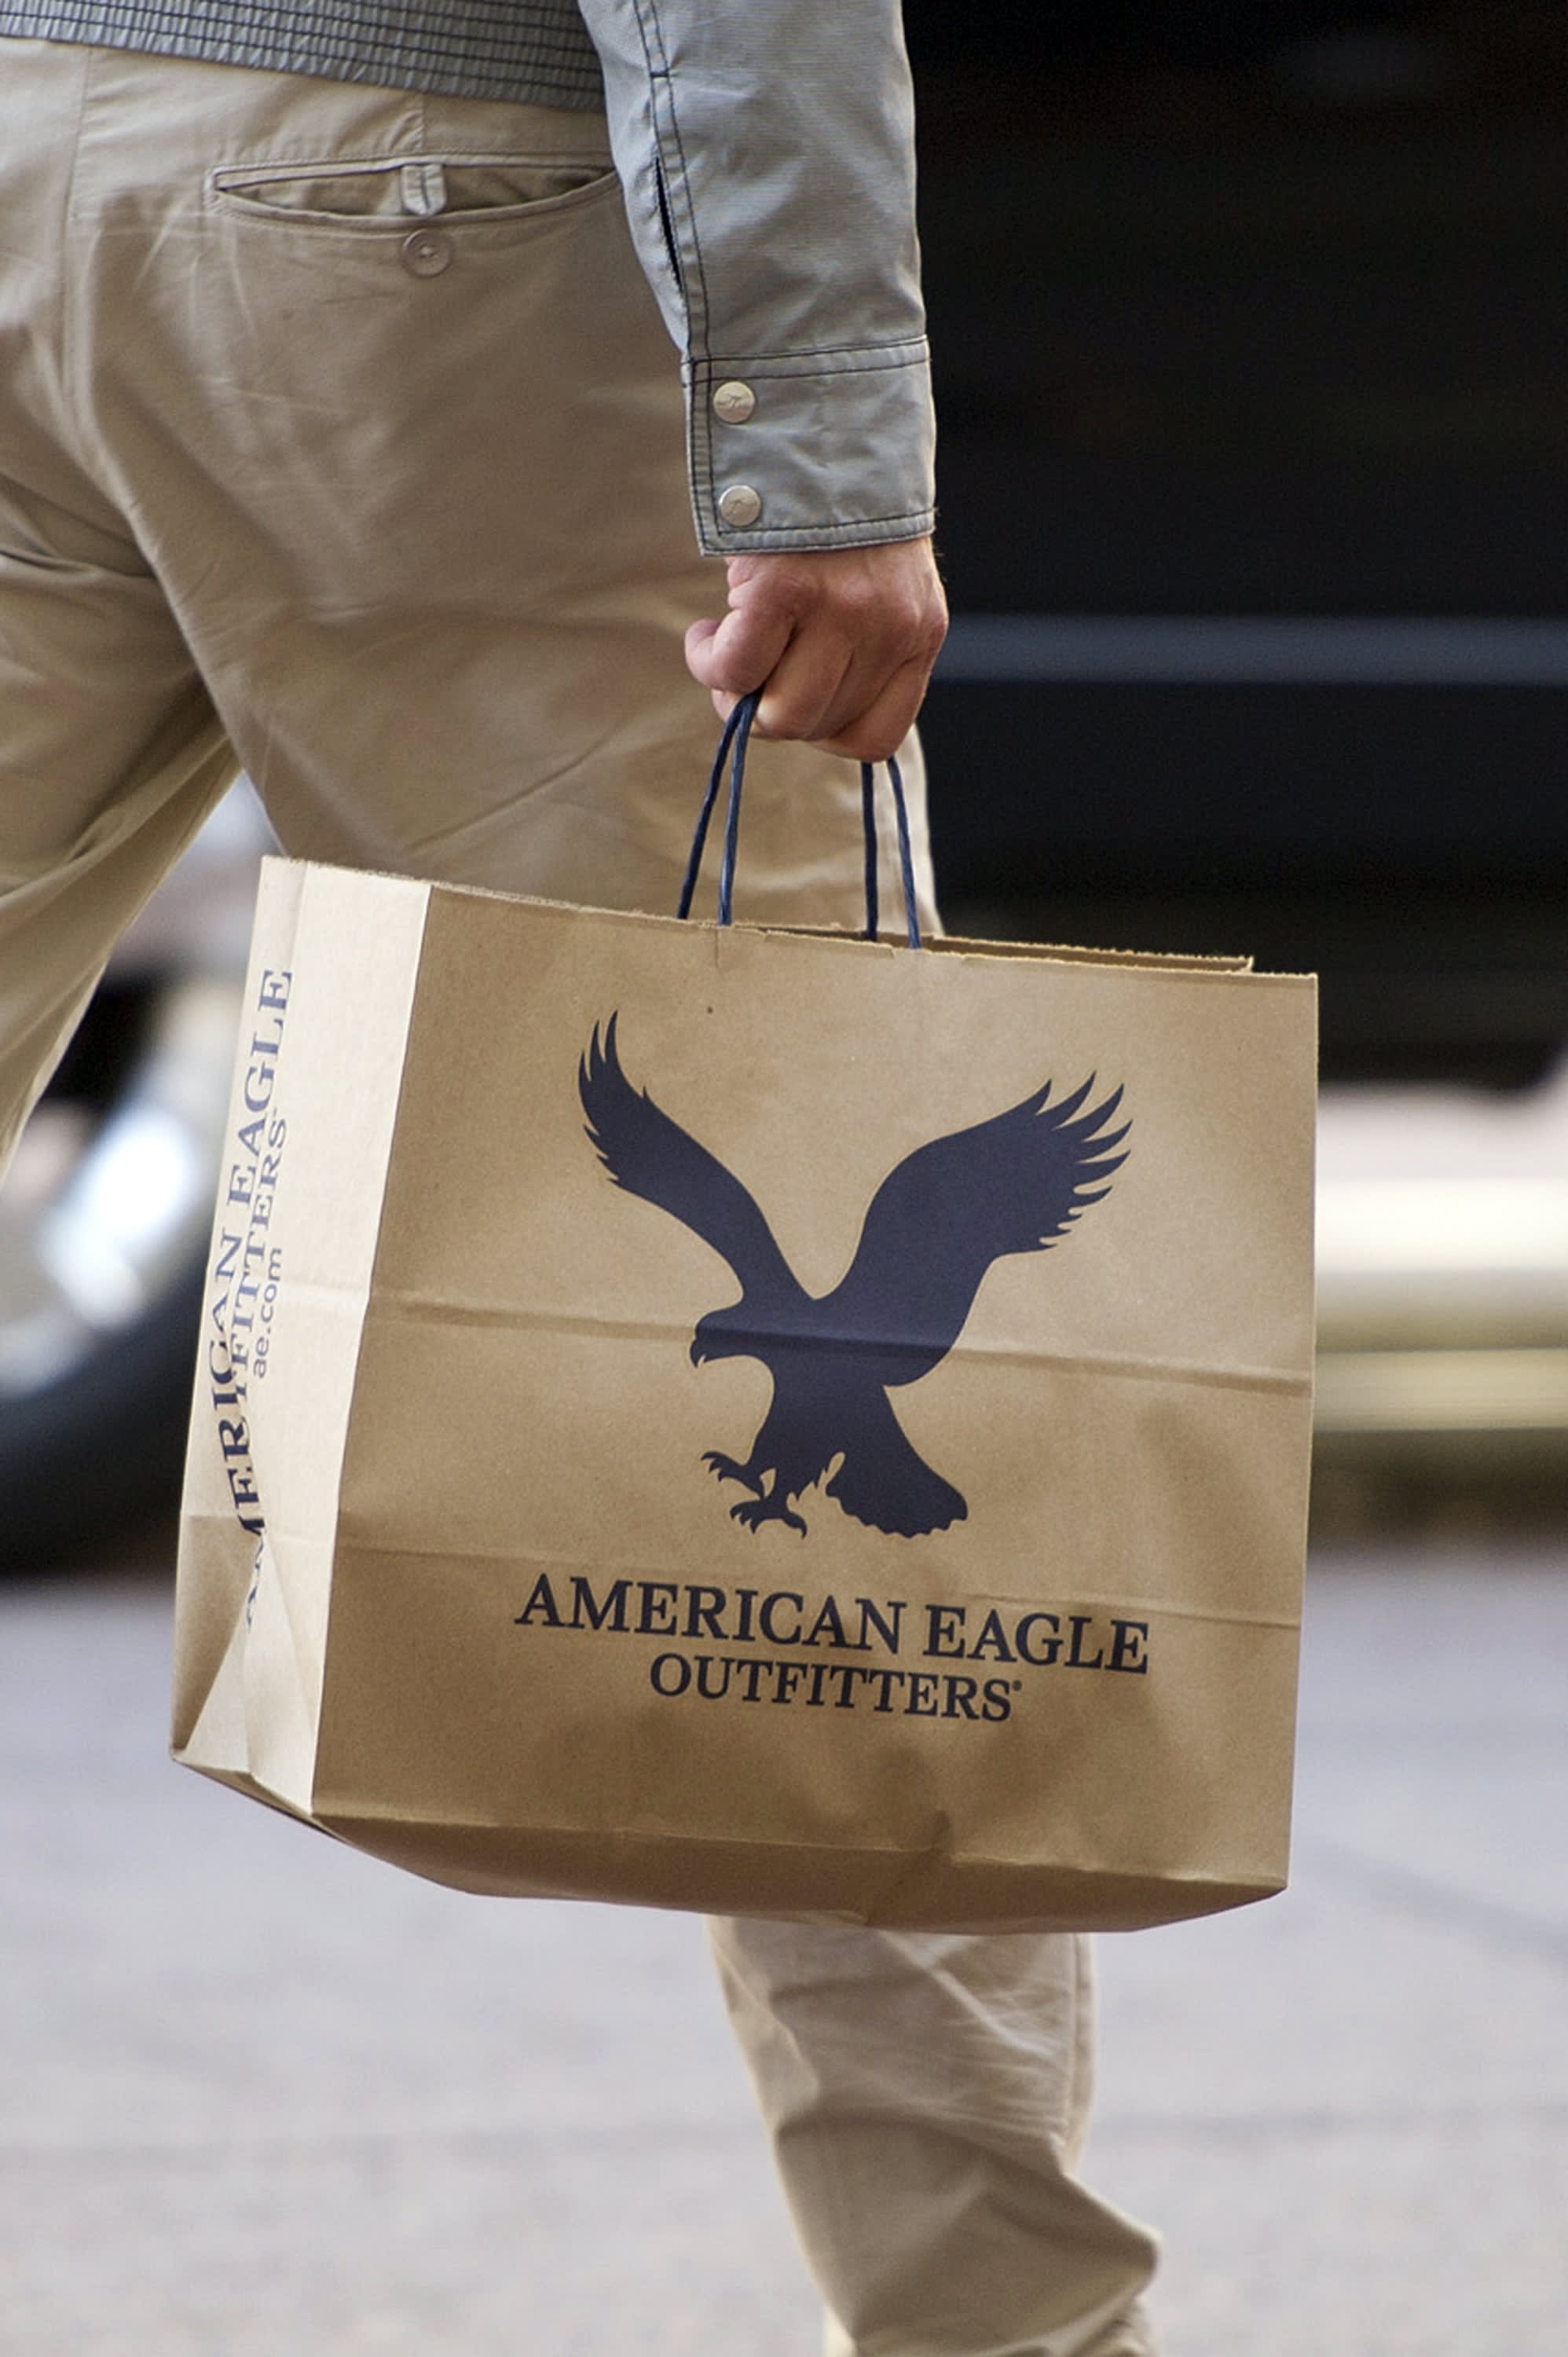 American Eagle Outfitters CEO expects 'Roaring 20s'-like boom for mall... image